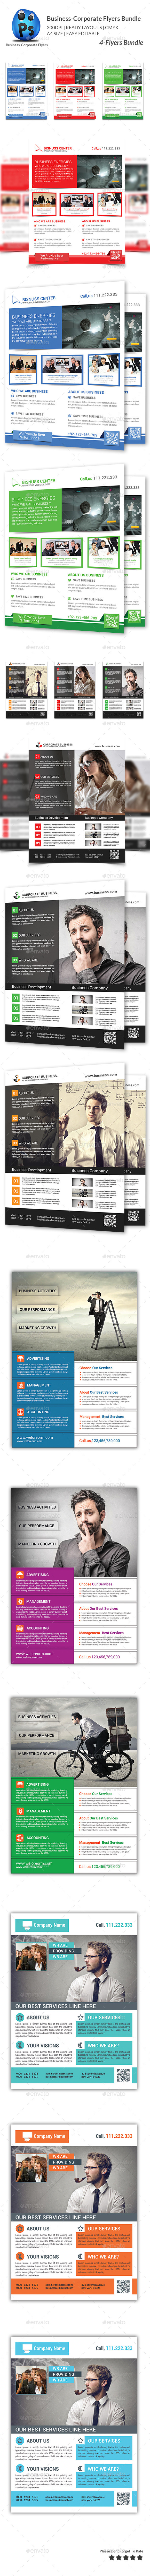 Business Flyers Bundle Templates - Corporate Flyers